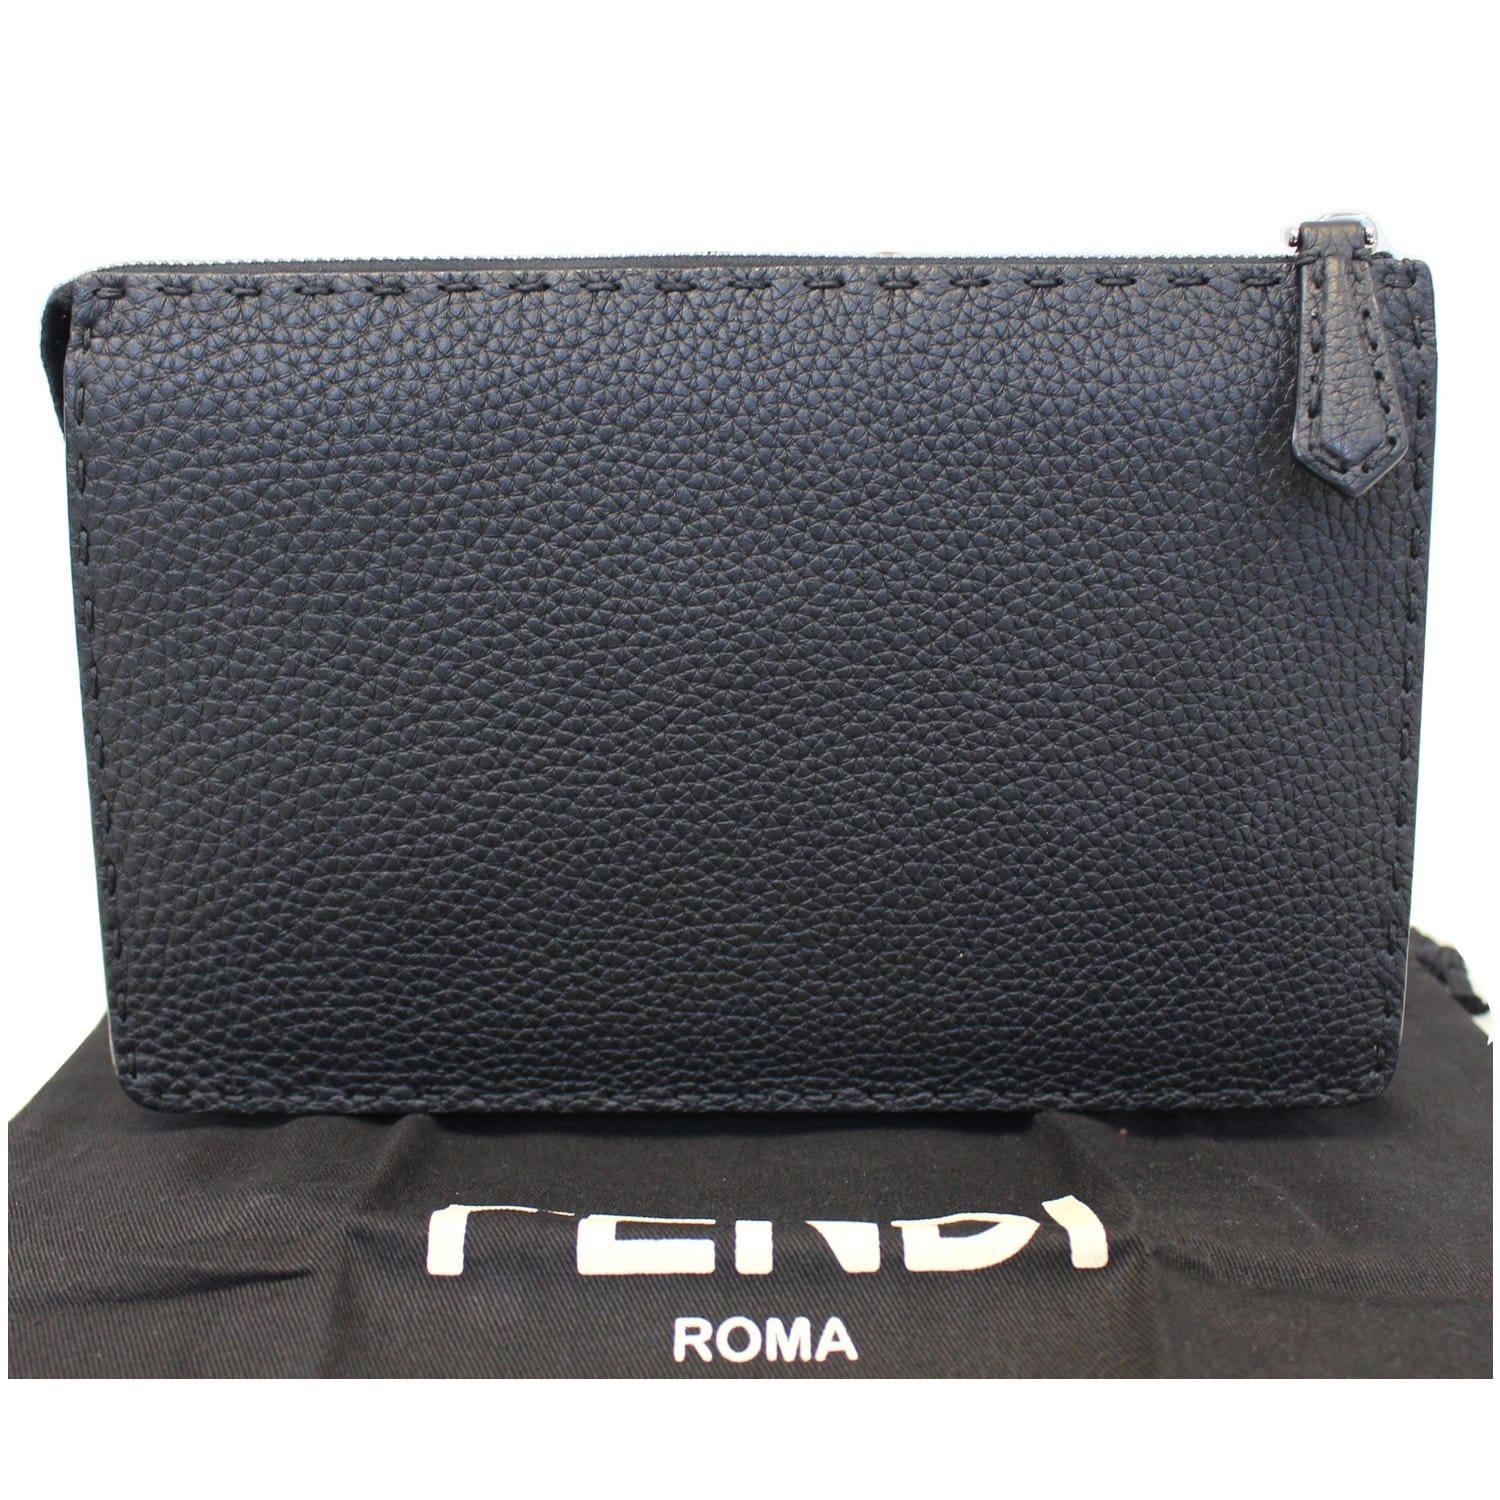 099f3ead023 ... FENDI Bag Bugs eyes Roman Leather Clutch-US ...